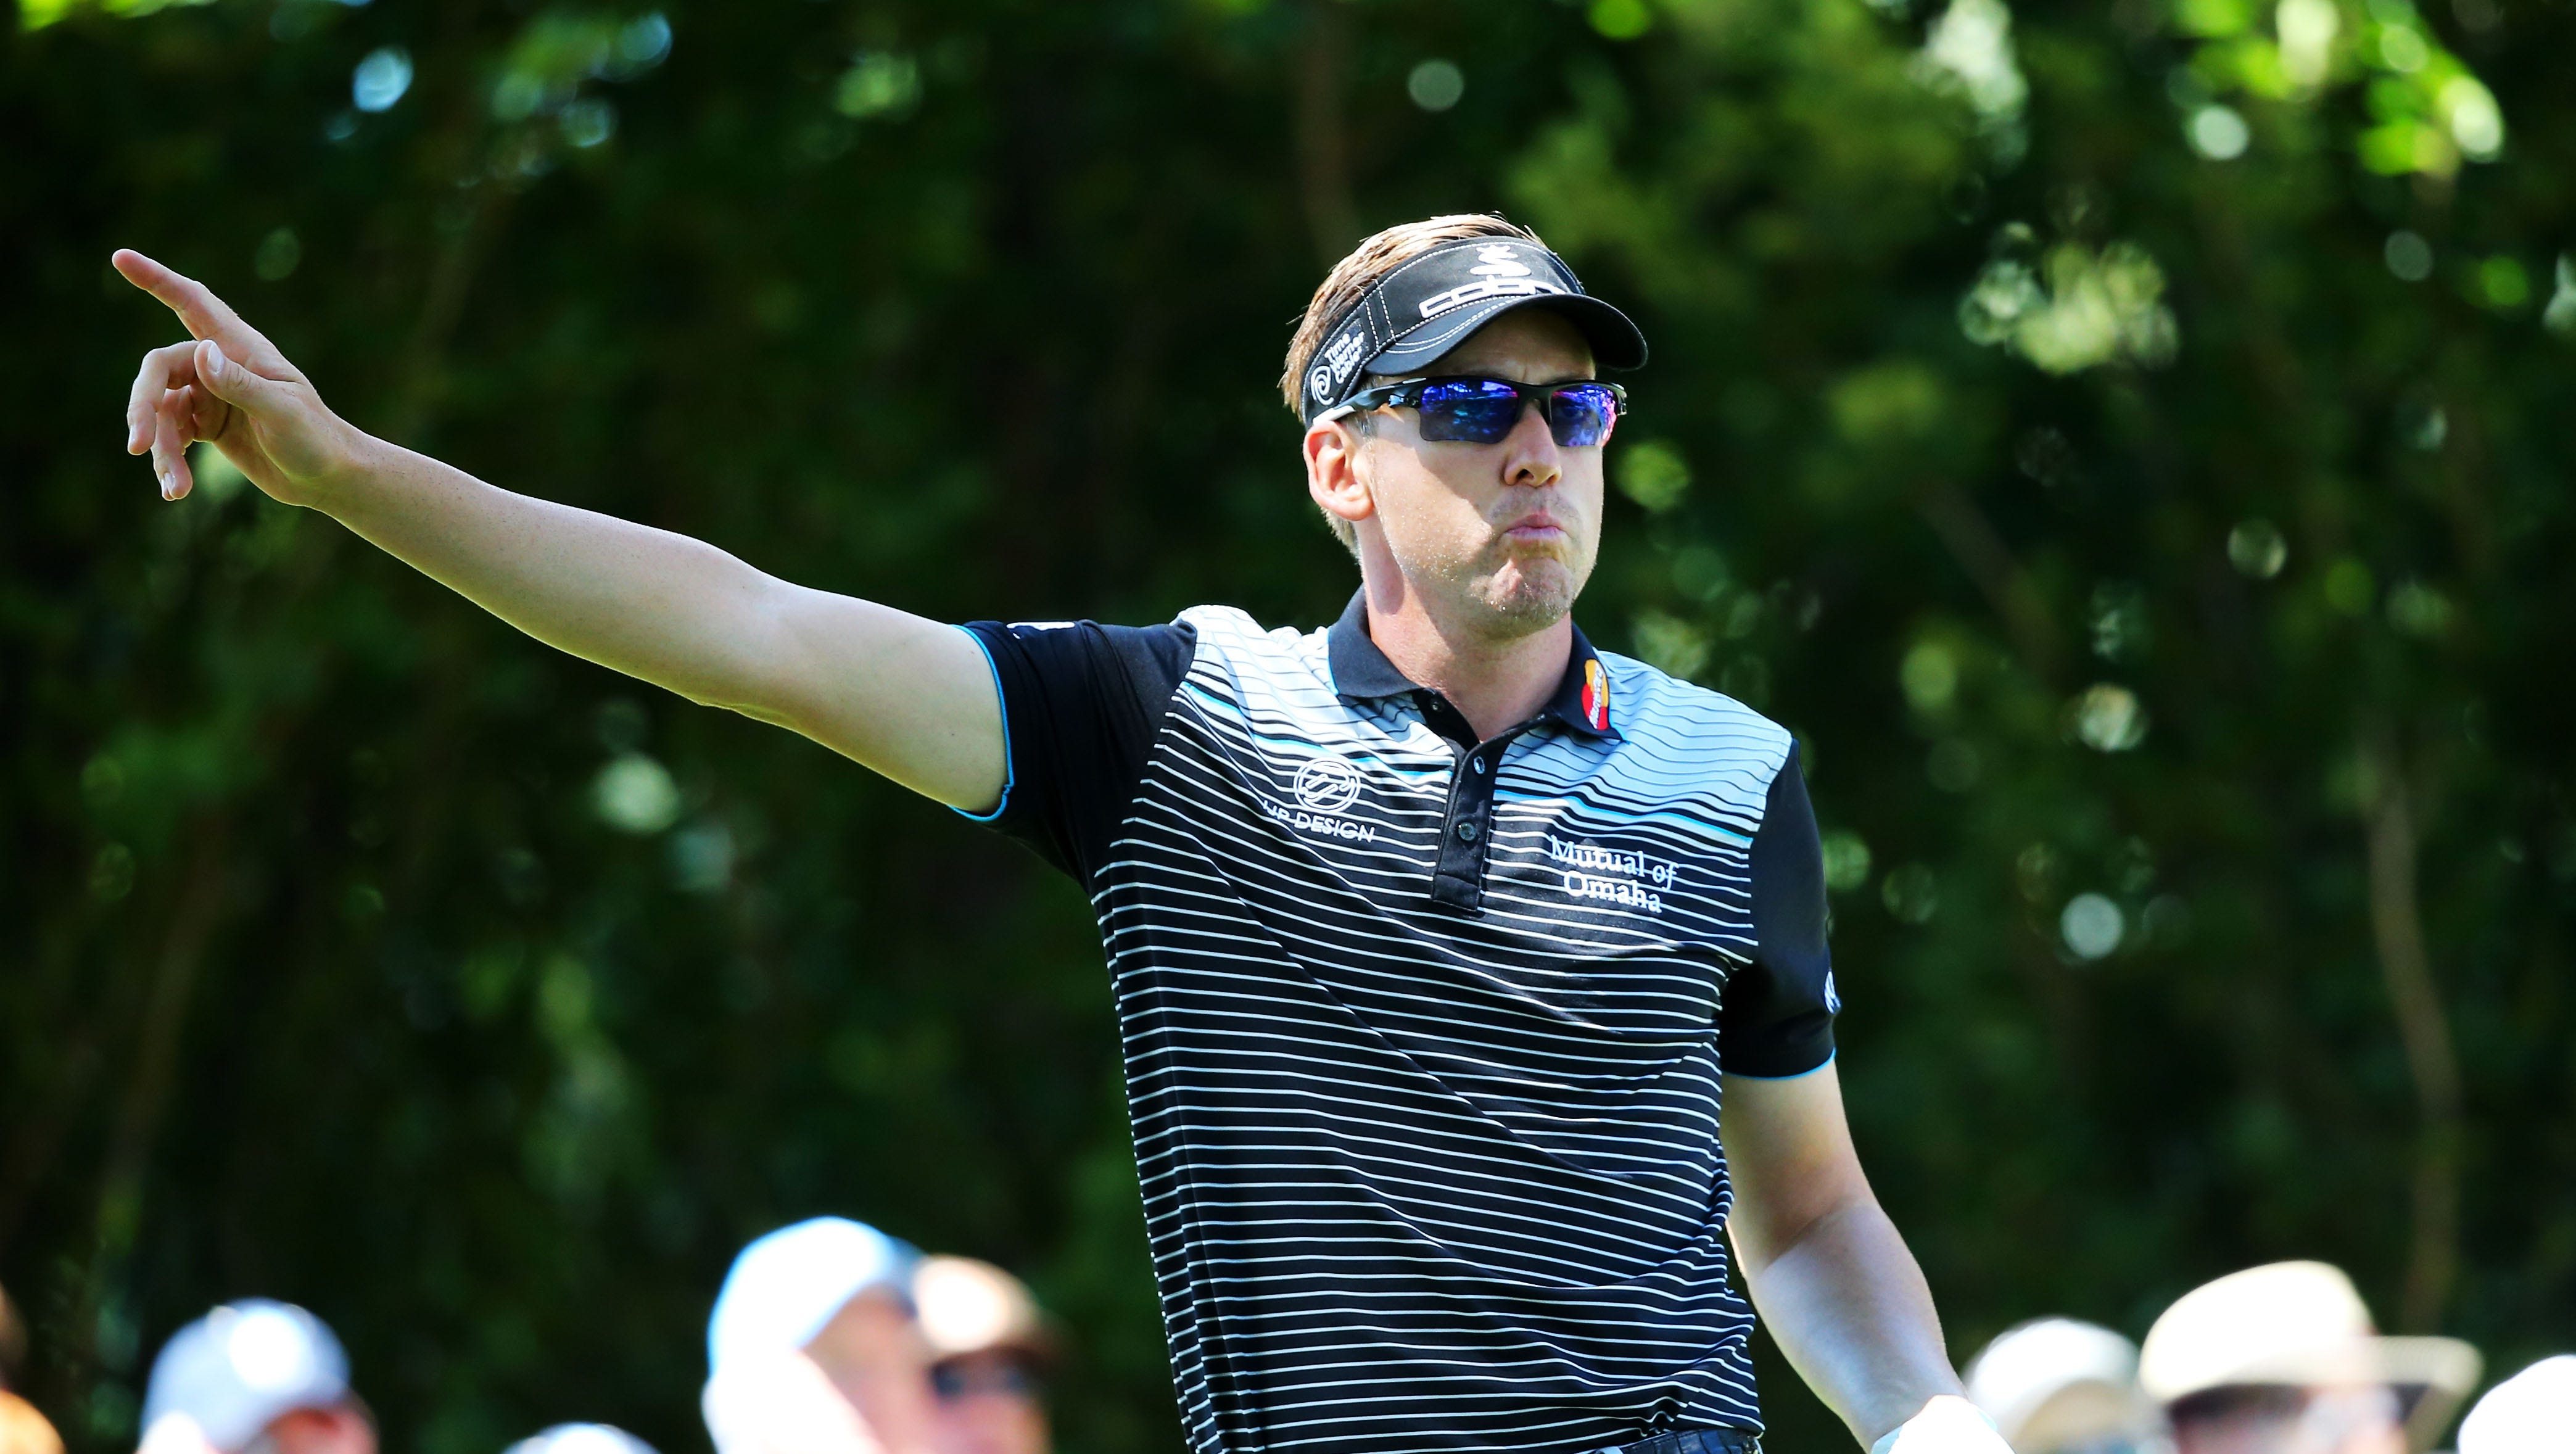 Ian Poulter of England signals after his tee shot on No. 10 flies wild.